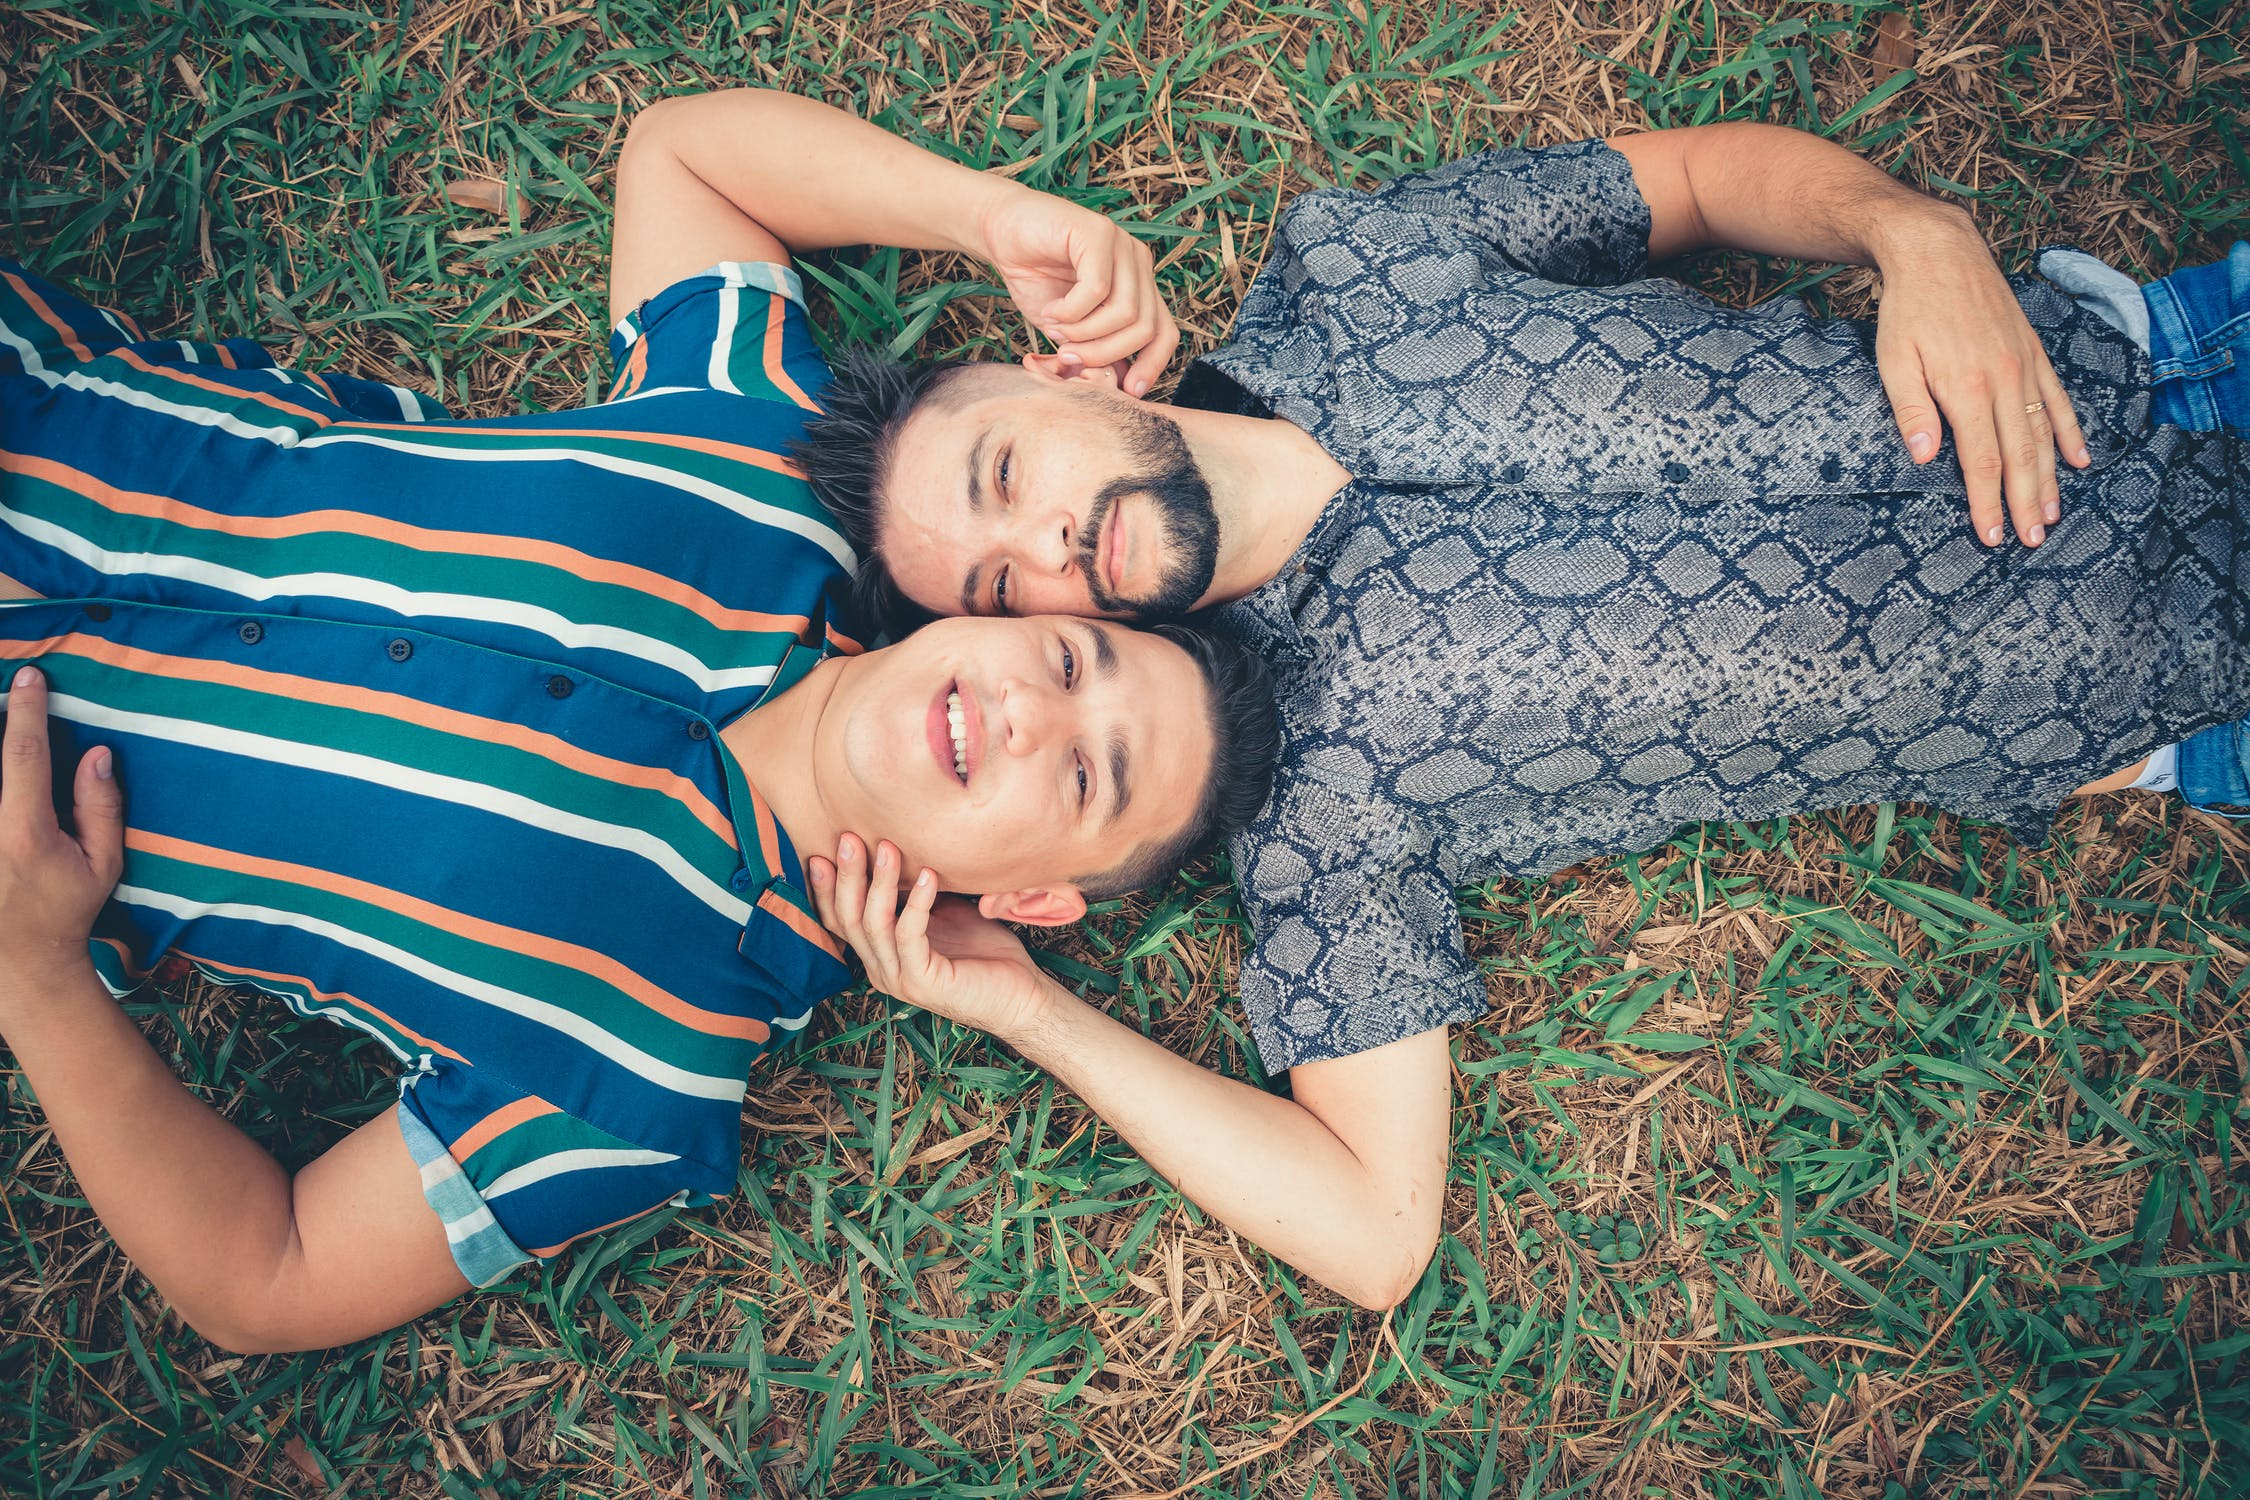 LGBT Lawyers two men in a park ready to go cottaging